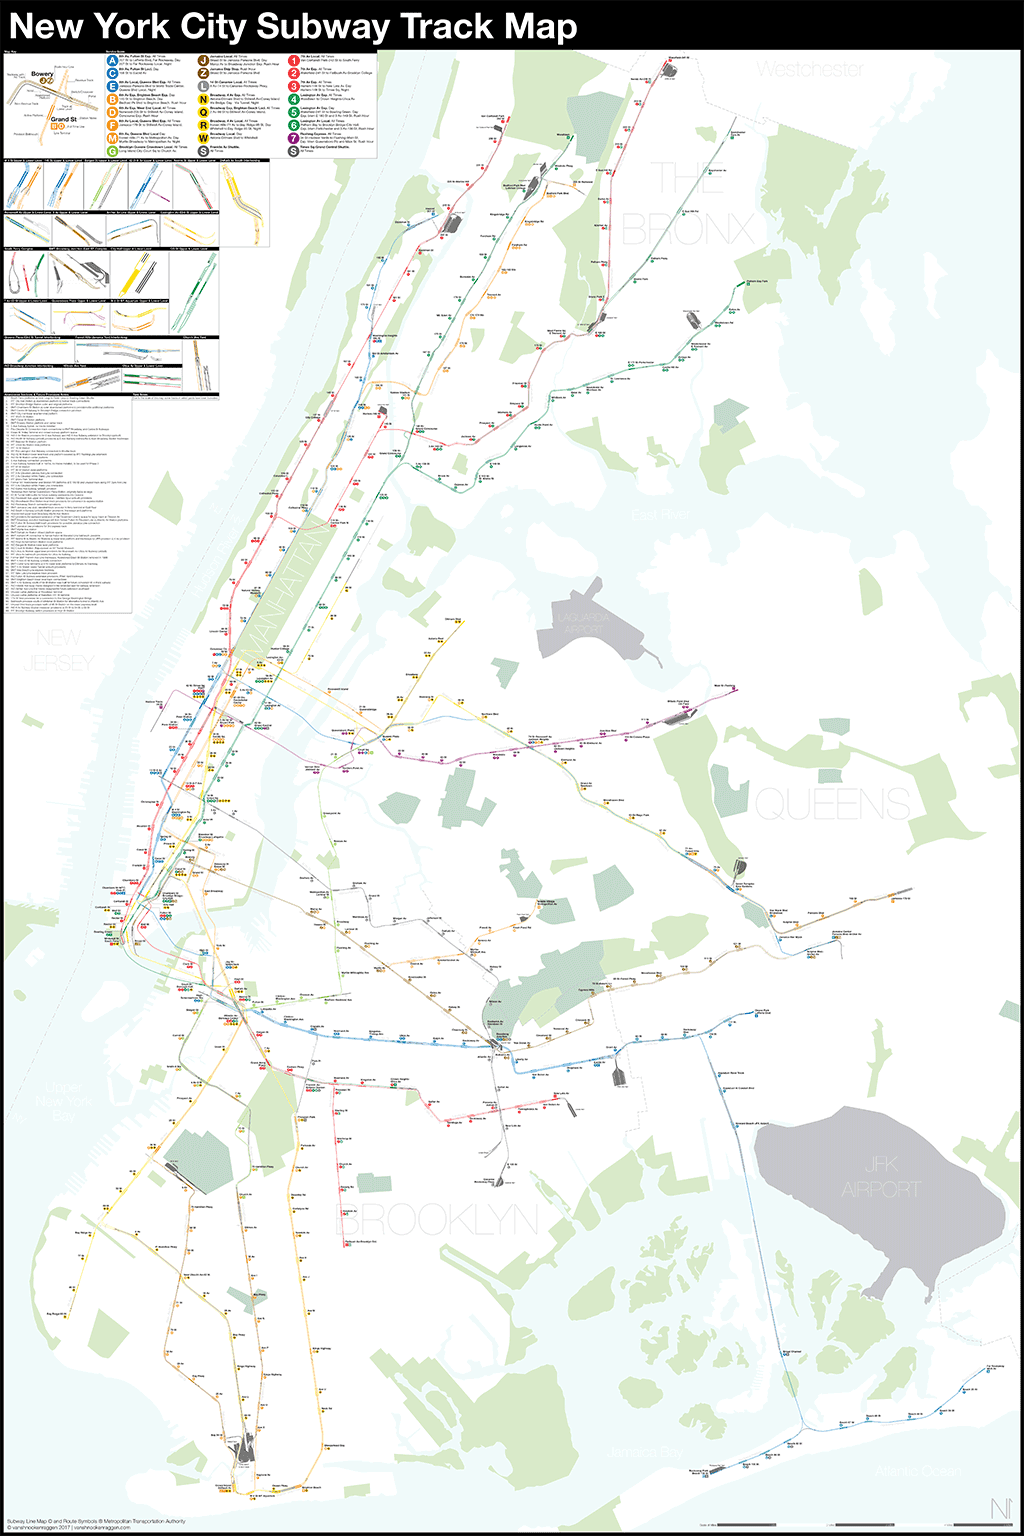 Subway Map For New York City.A Complete And Geographically Accurate Nyc Subway Track Map